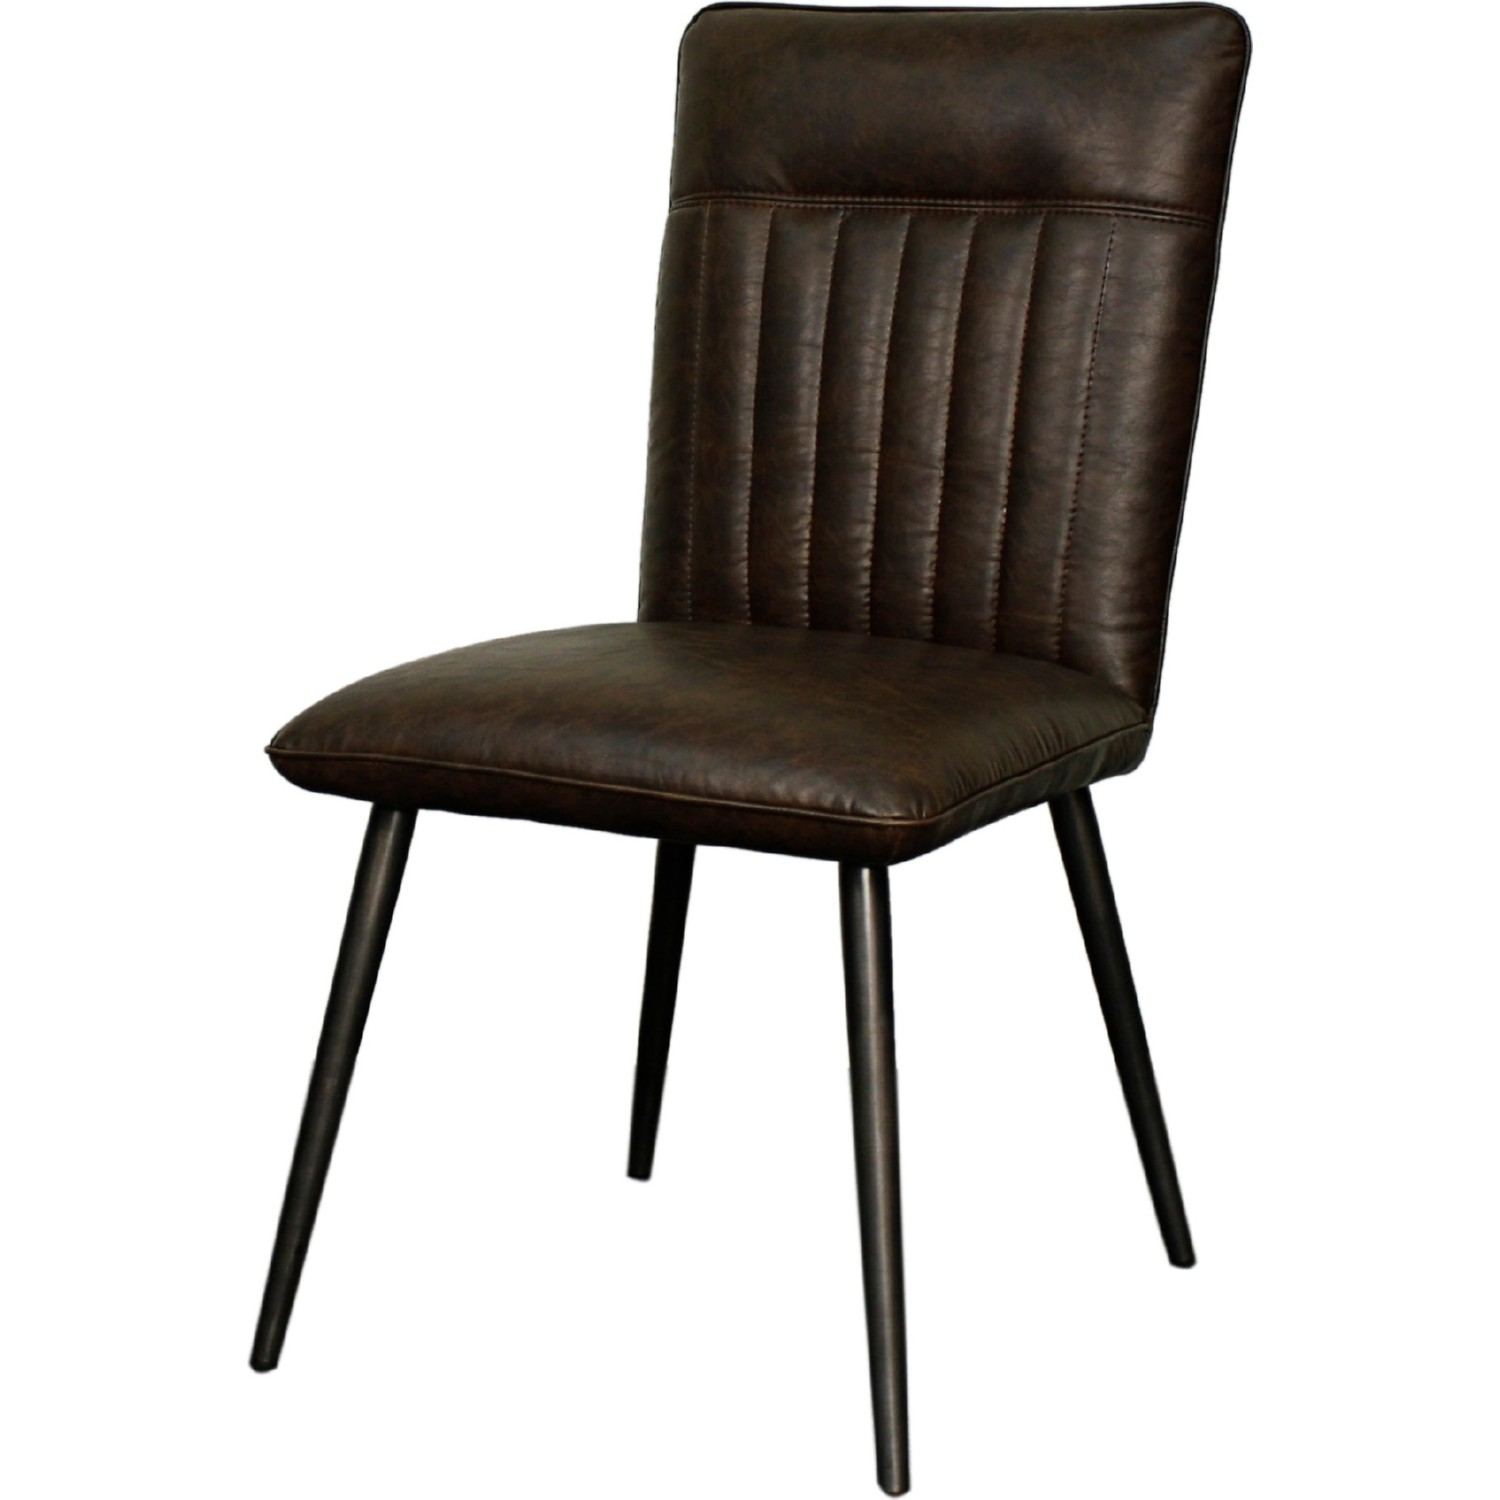 New Pacific Direct 568237P 417 VB Caden Dining Chair In